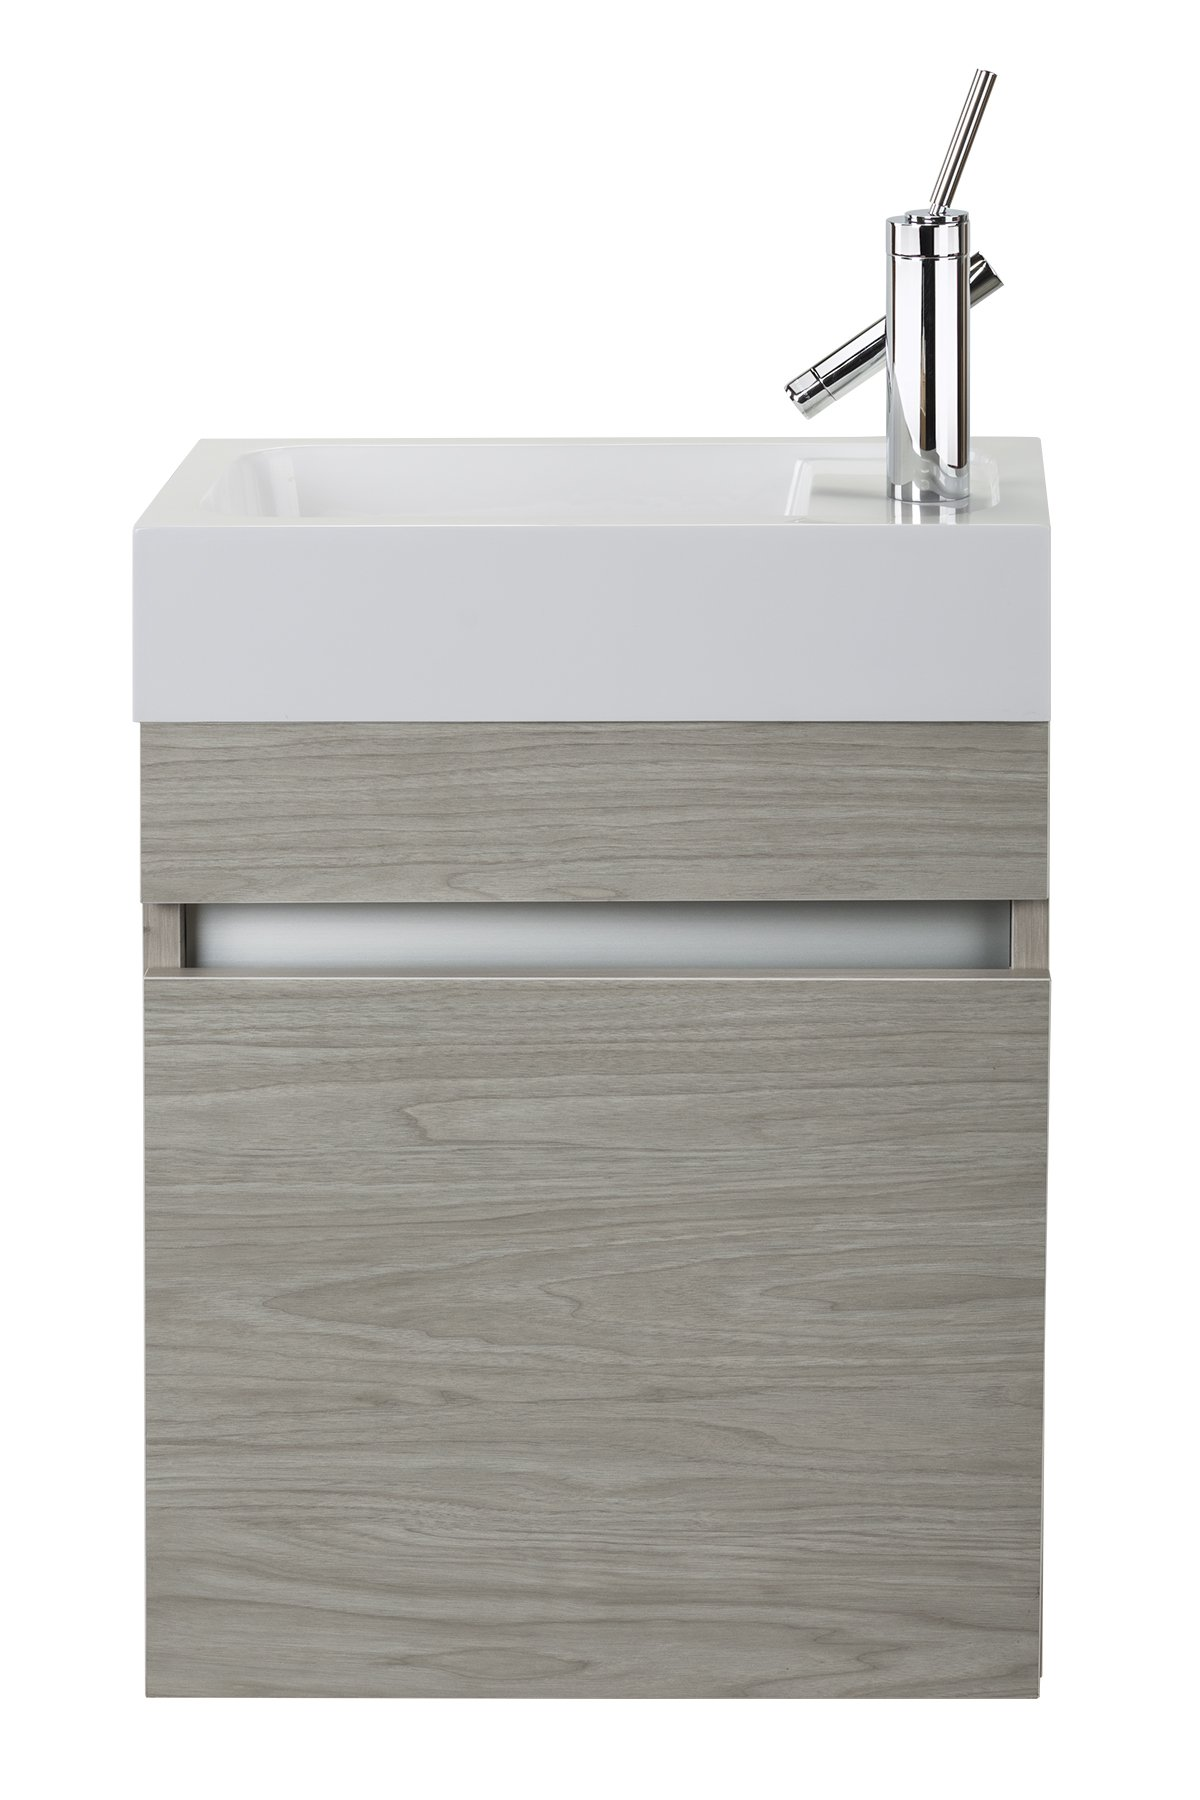 Cutler Kitchen & Bath FVPICCWKND18 Sangallo 18 in. Space Saver Bathroom Vanity, 18 inch, White - Includes cabinet Select from available finishes Wood construction - bathroom-vanities, bathroom-fixtures-hardware, bathroom - 71R j0yuwTL -